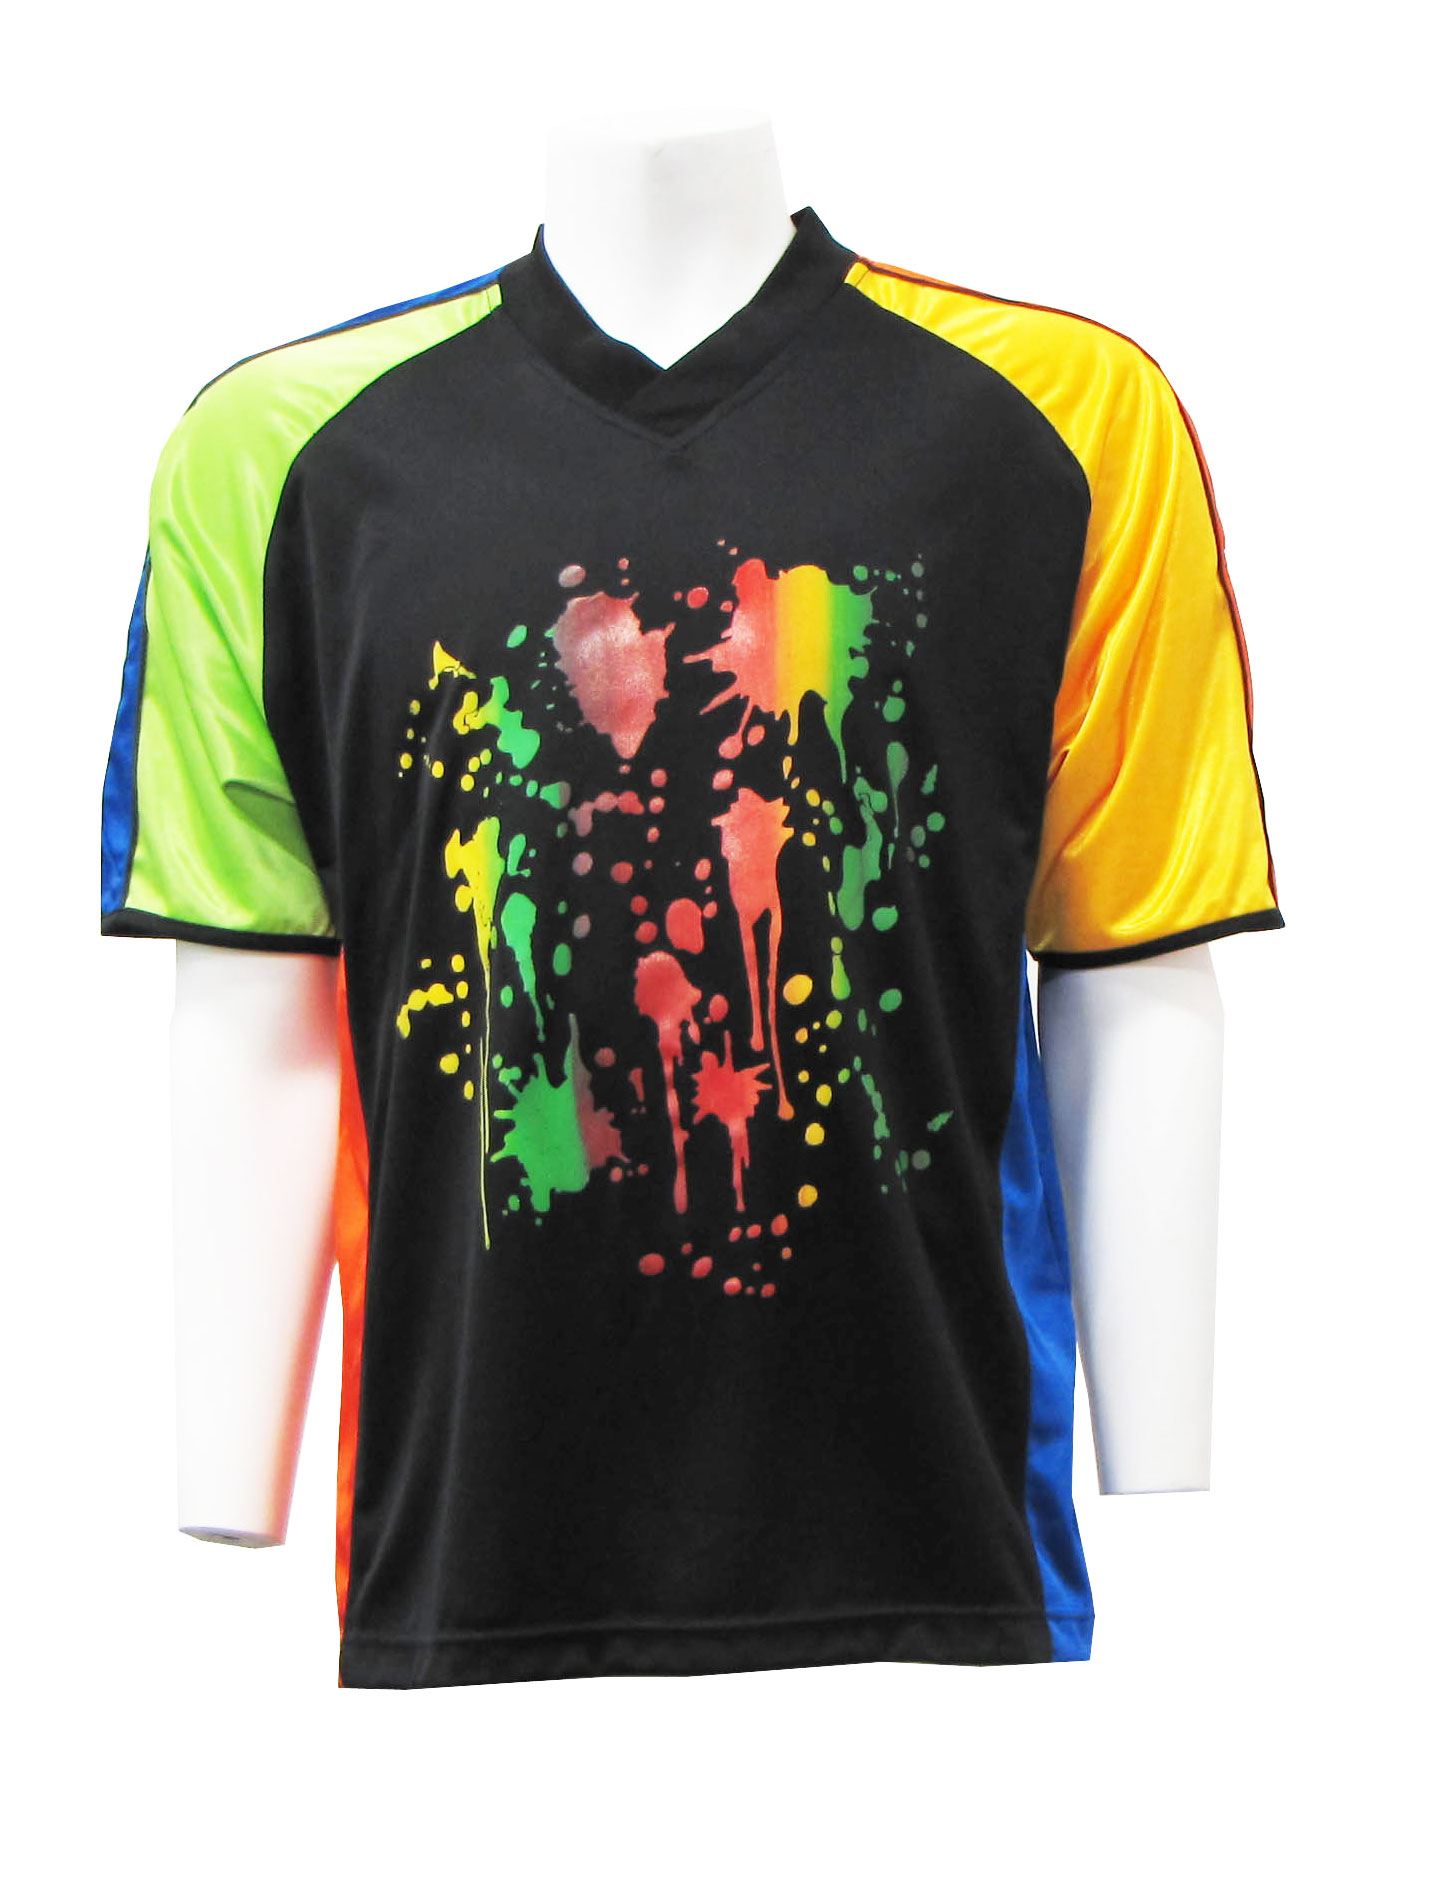 Paintball Splat short-sleeve soccer goalie jersey by Code Four Athletics